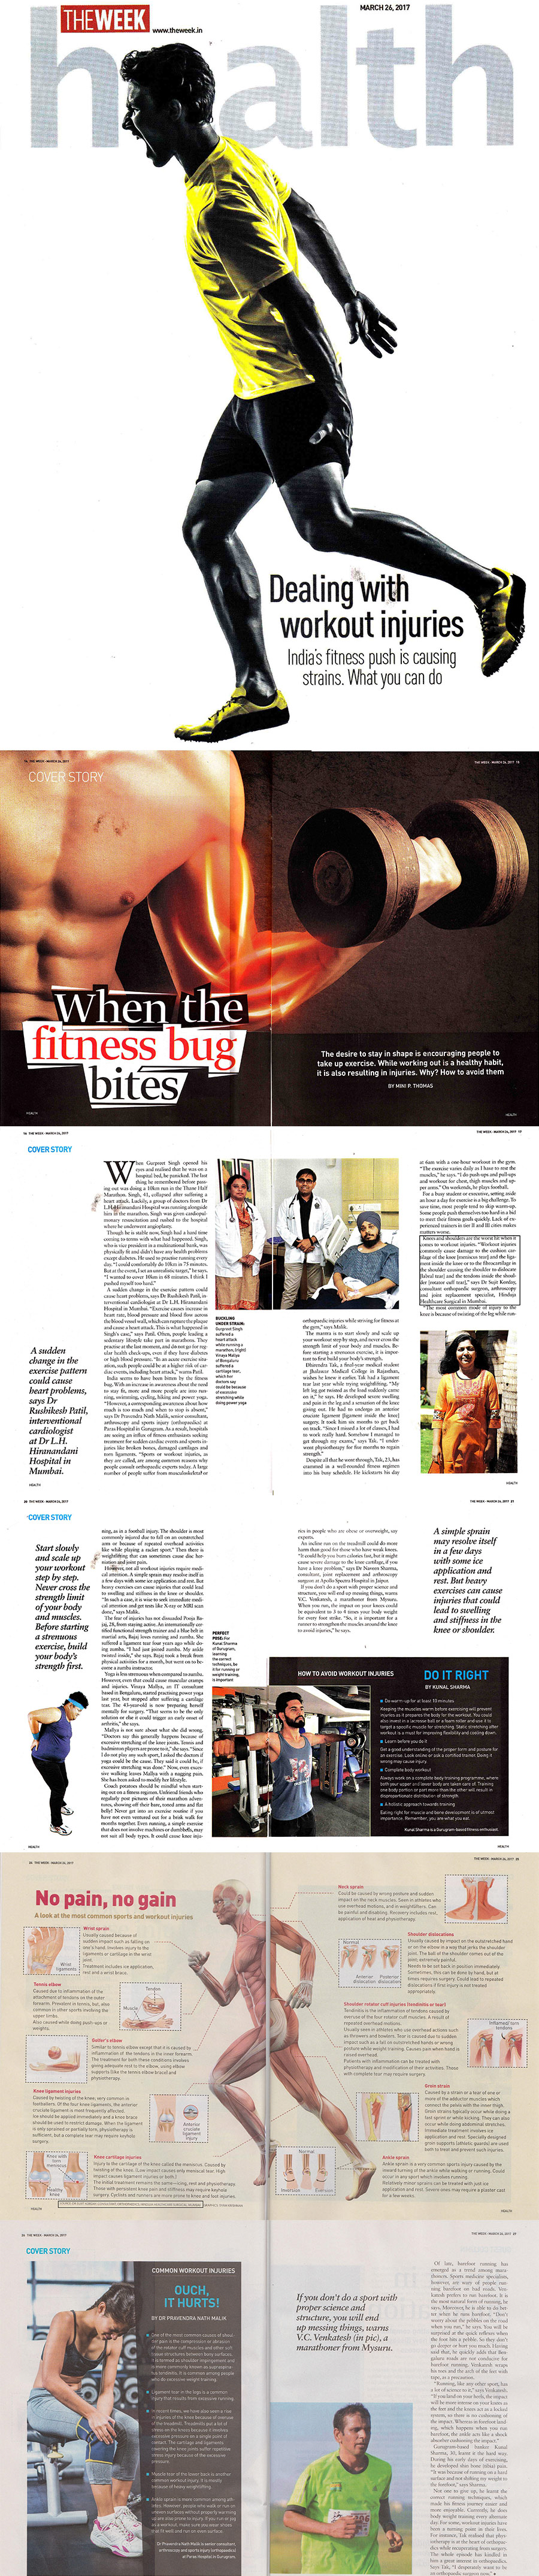 Dealing with workout injuries  - Hinduja Healthcare